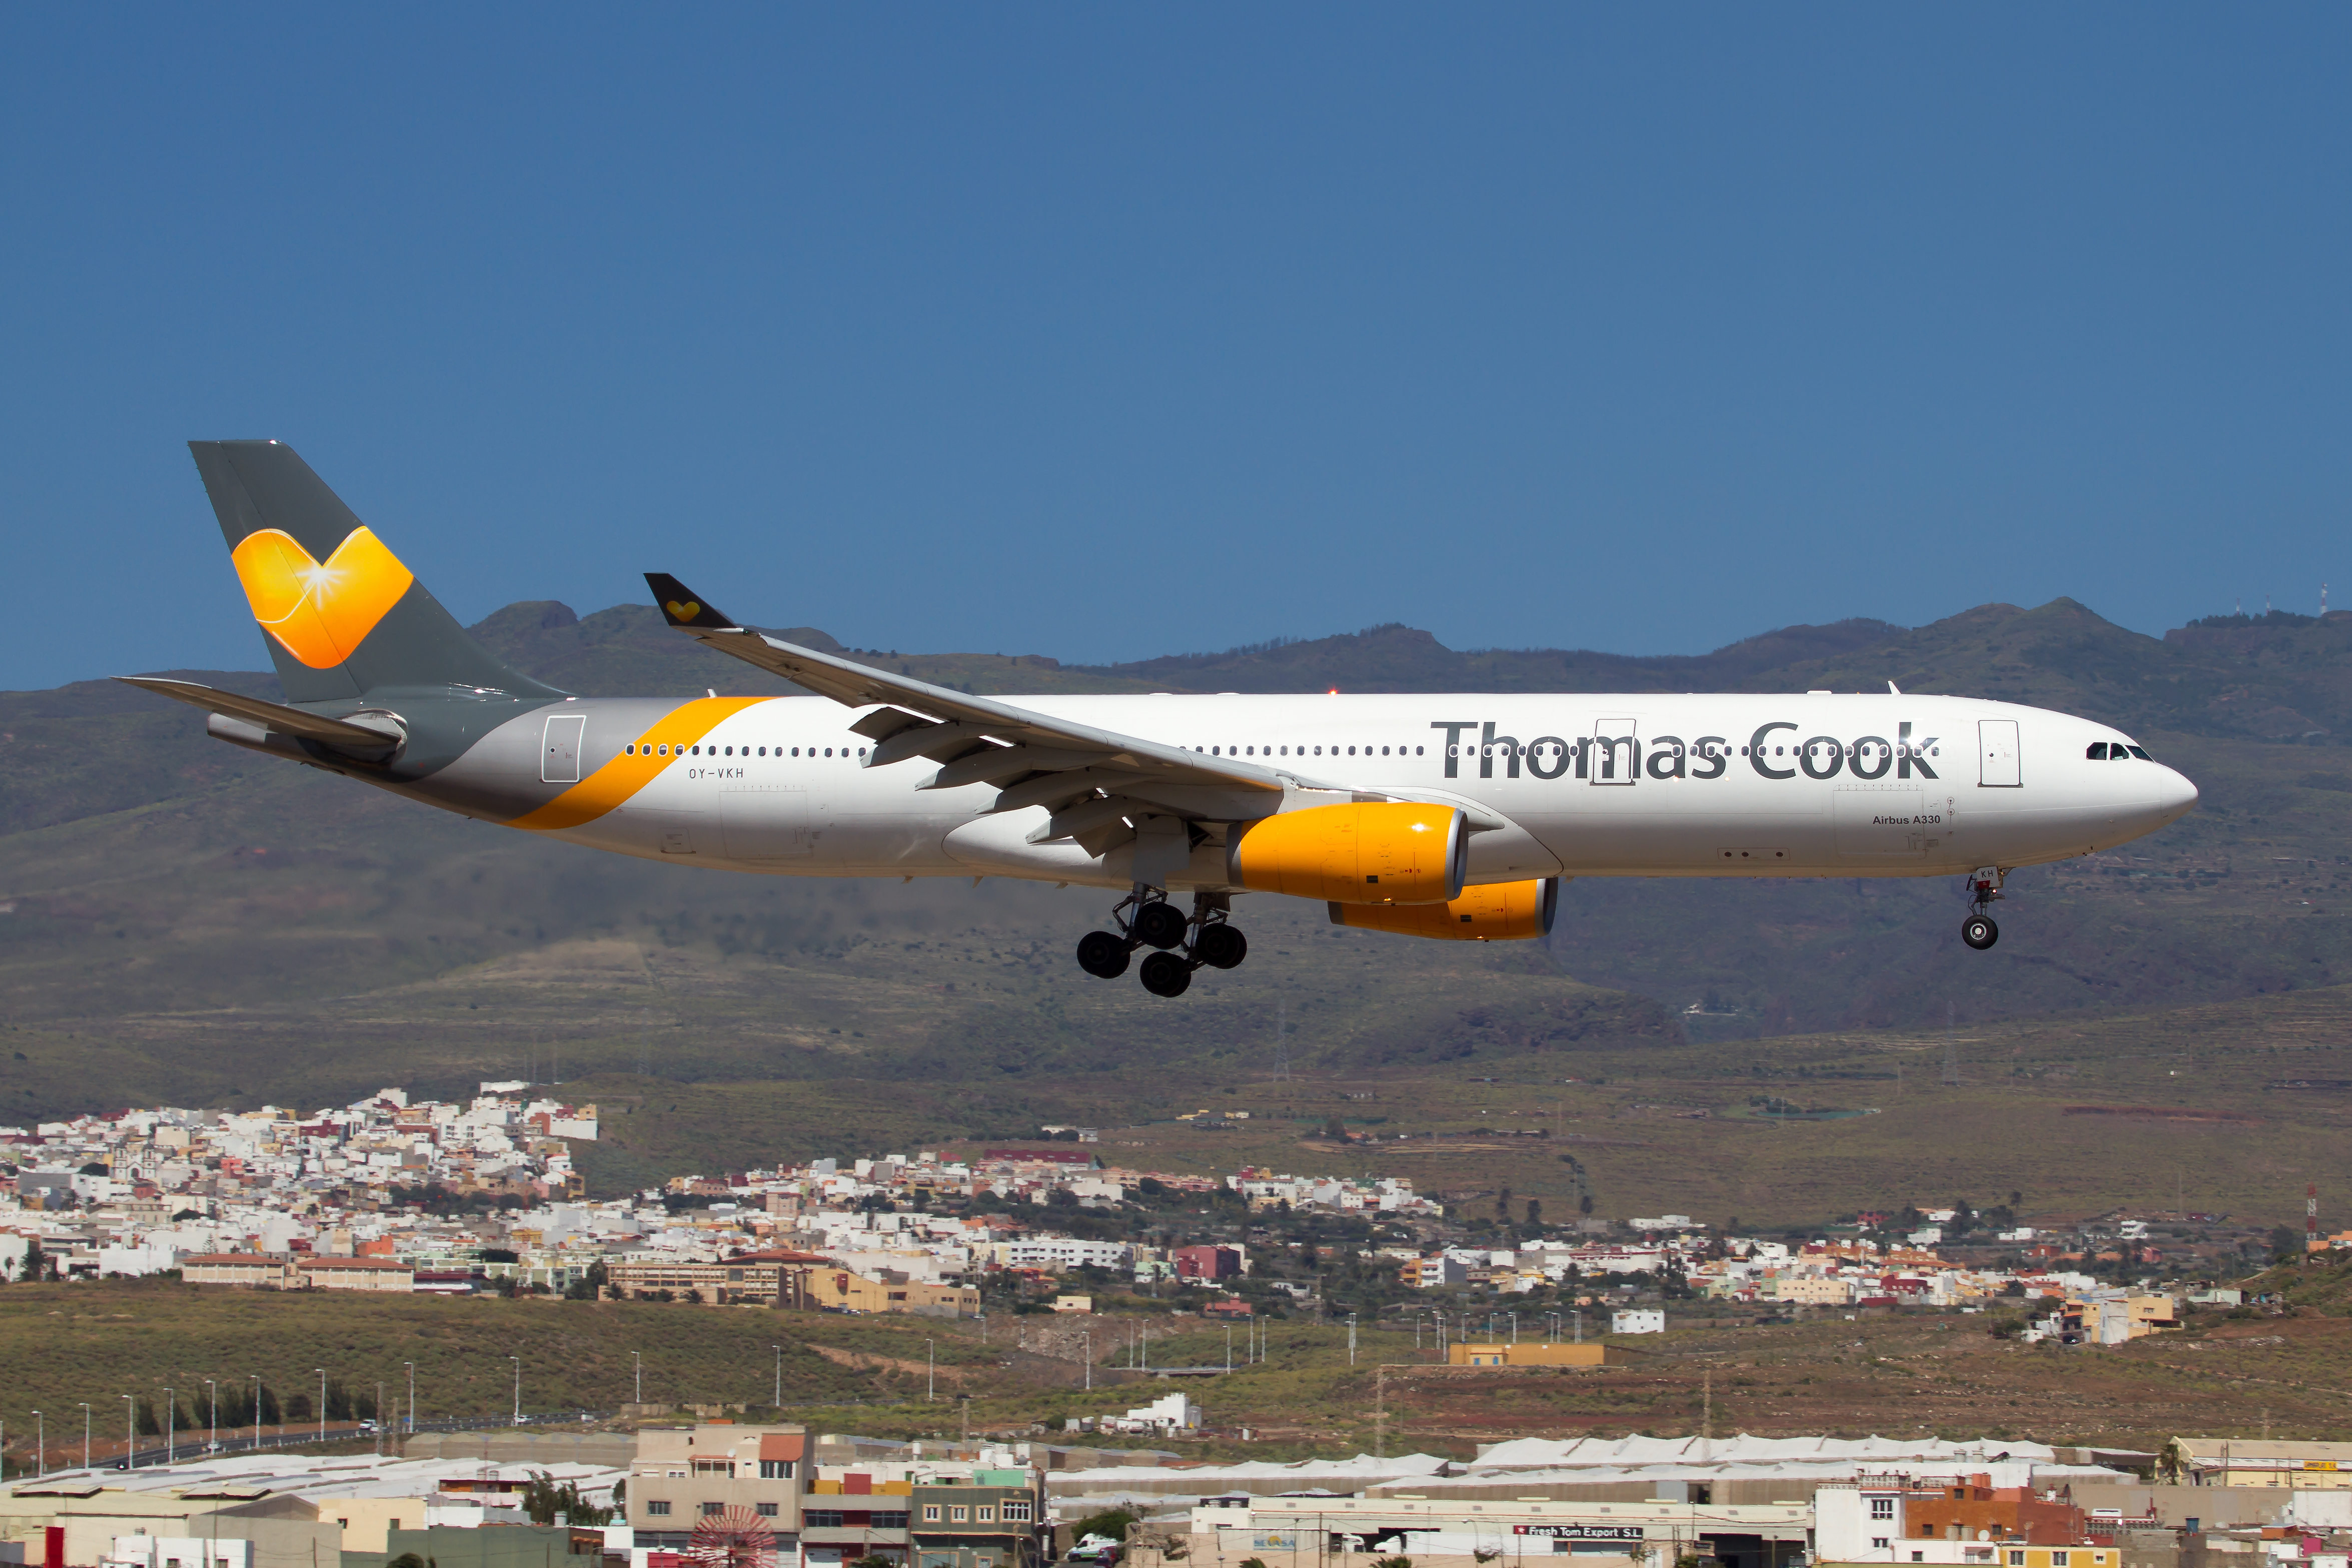 A Thomas Cook plane coming on for a landing.